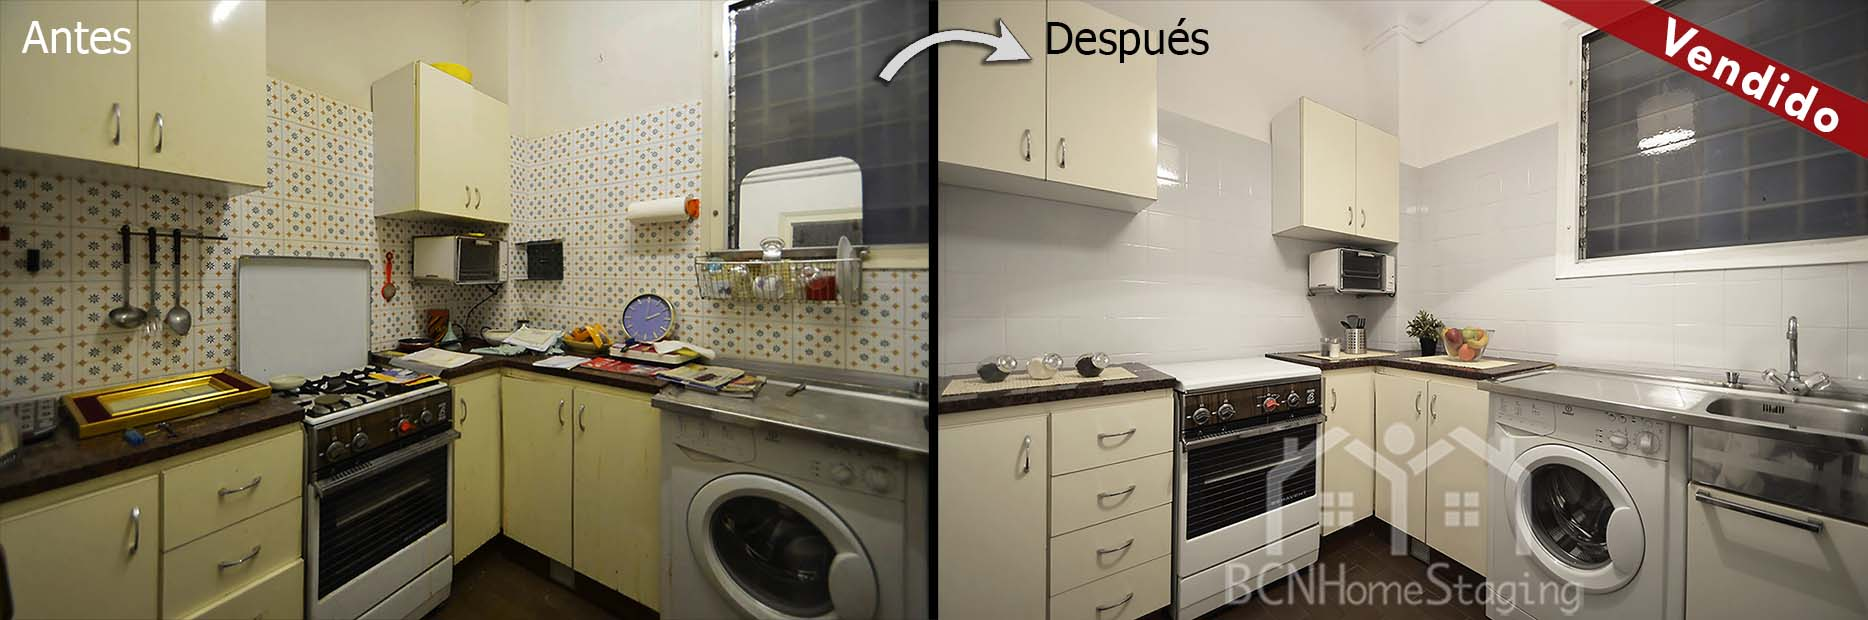 home-staging-barcelona-cocina-antes-despues